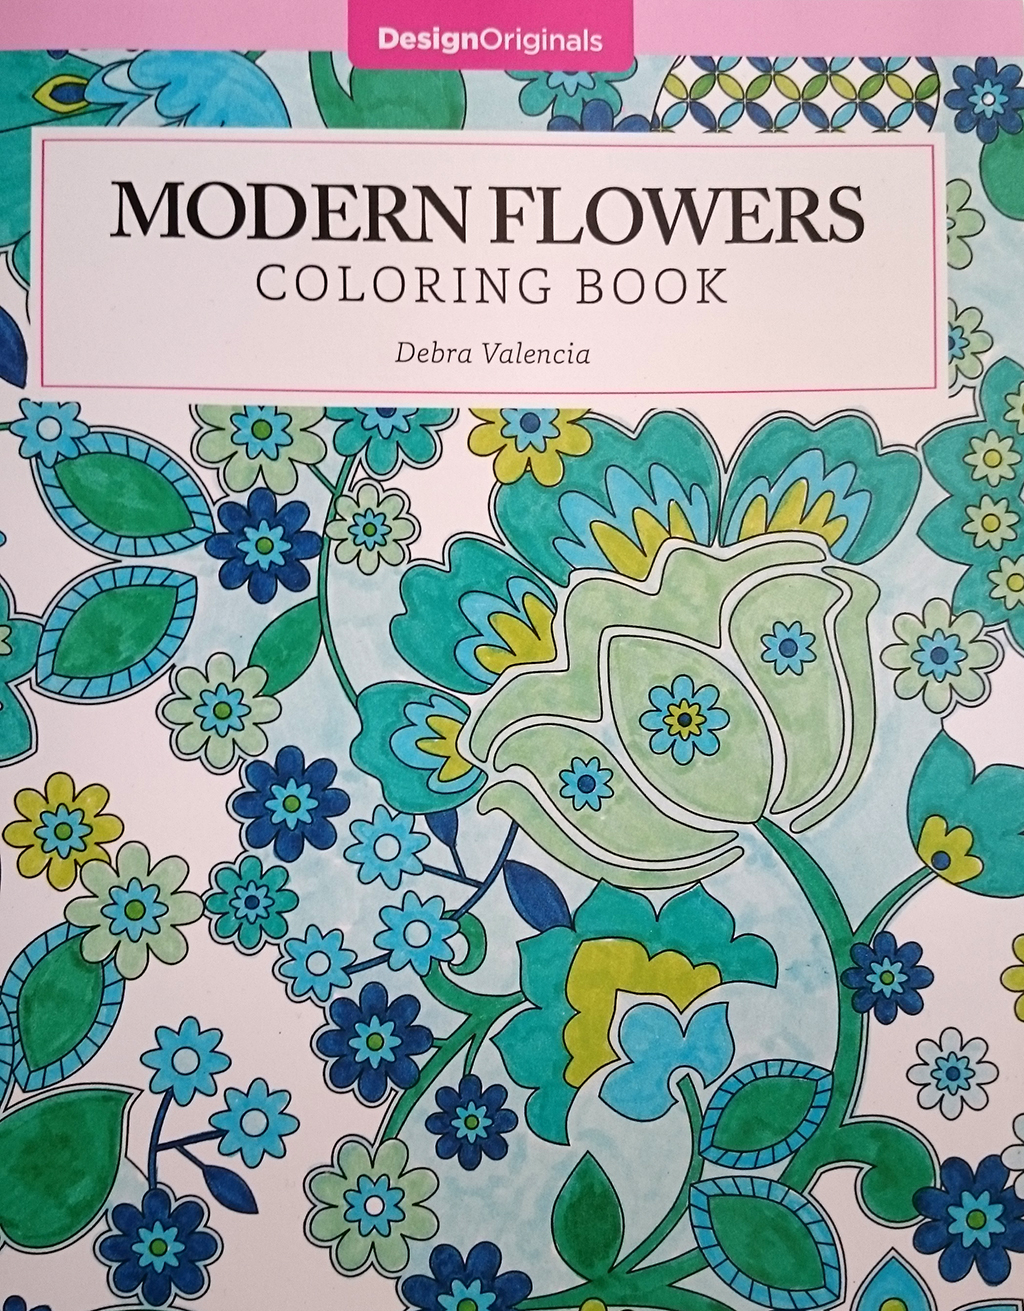 Modern-Flowers-Coloring-Book-01